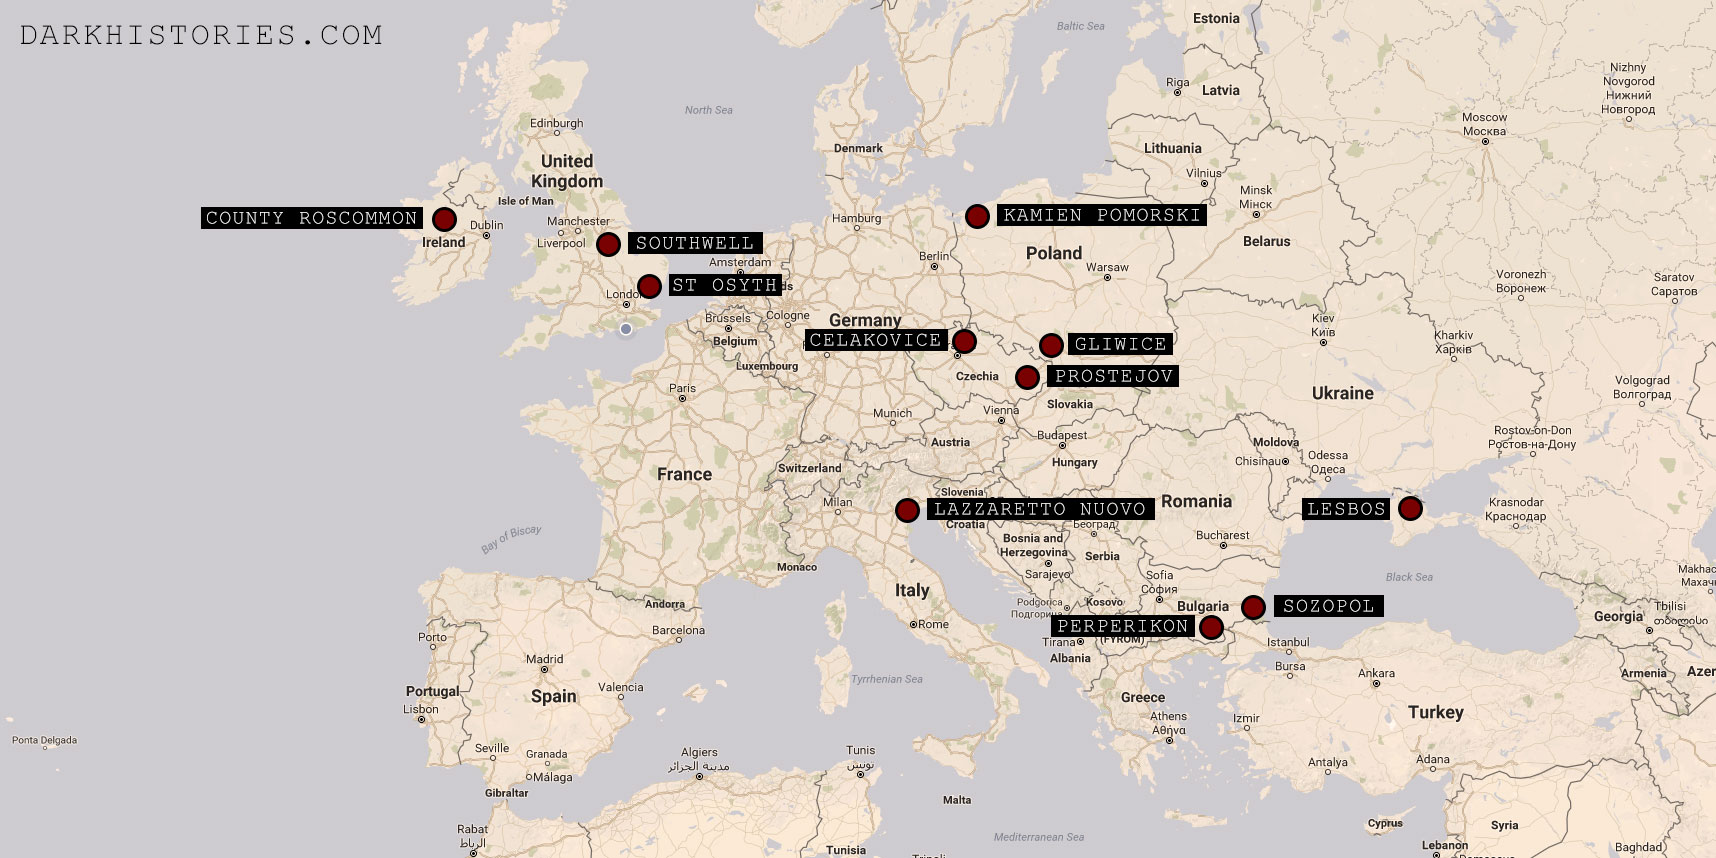 Map of Europe with locations of suspected Vampire deviant burials